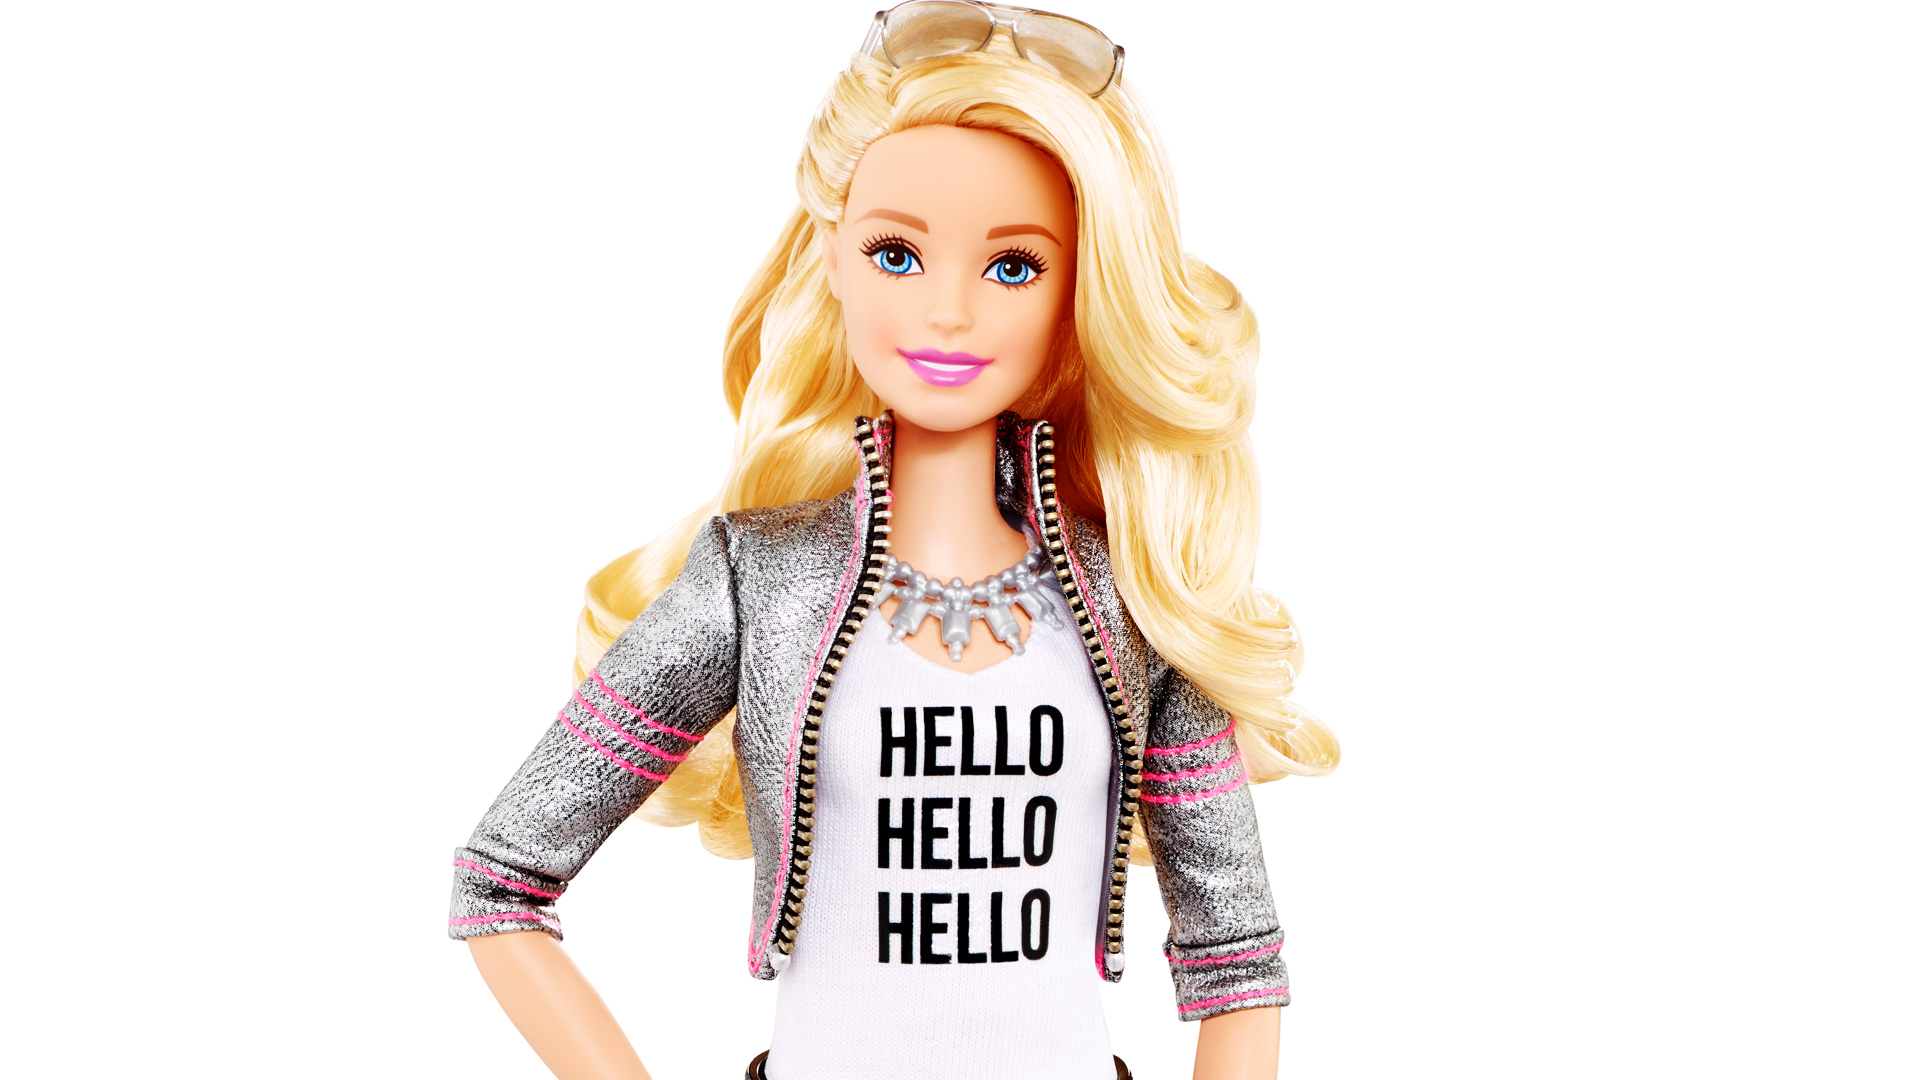 Blonde Barbie Doll 451.5 Kb